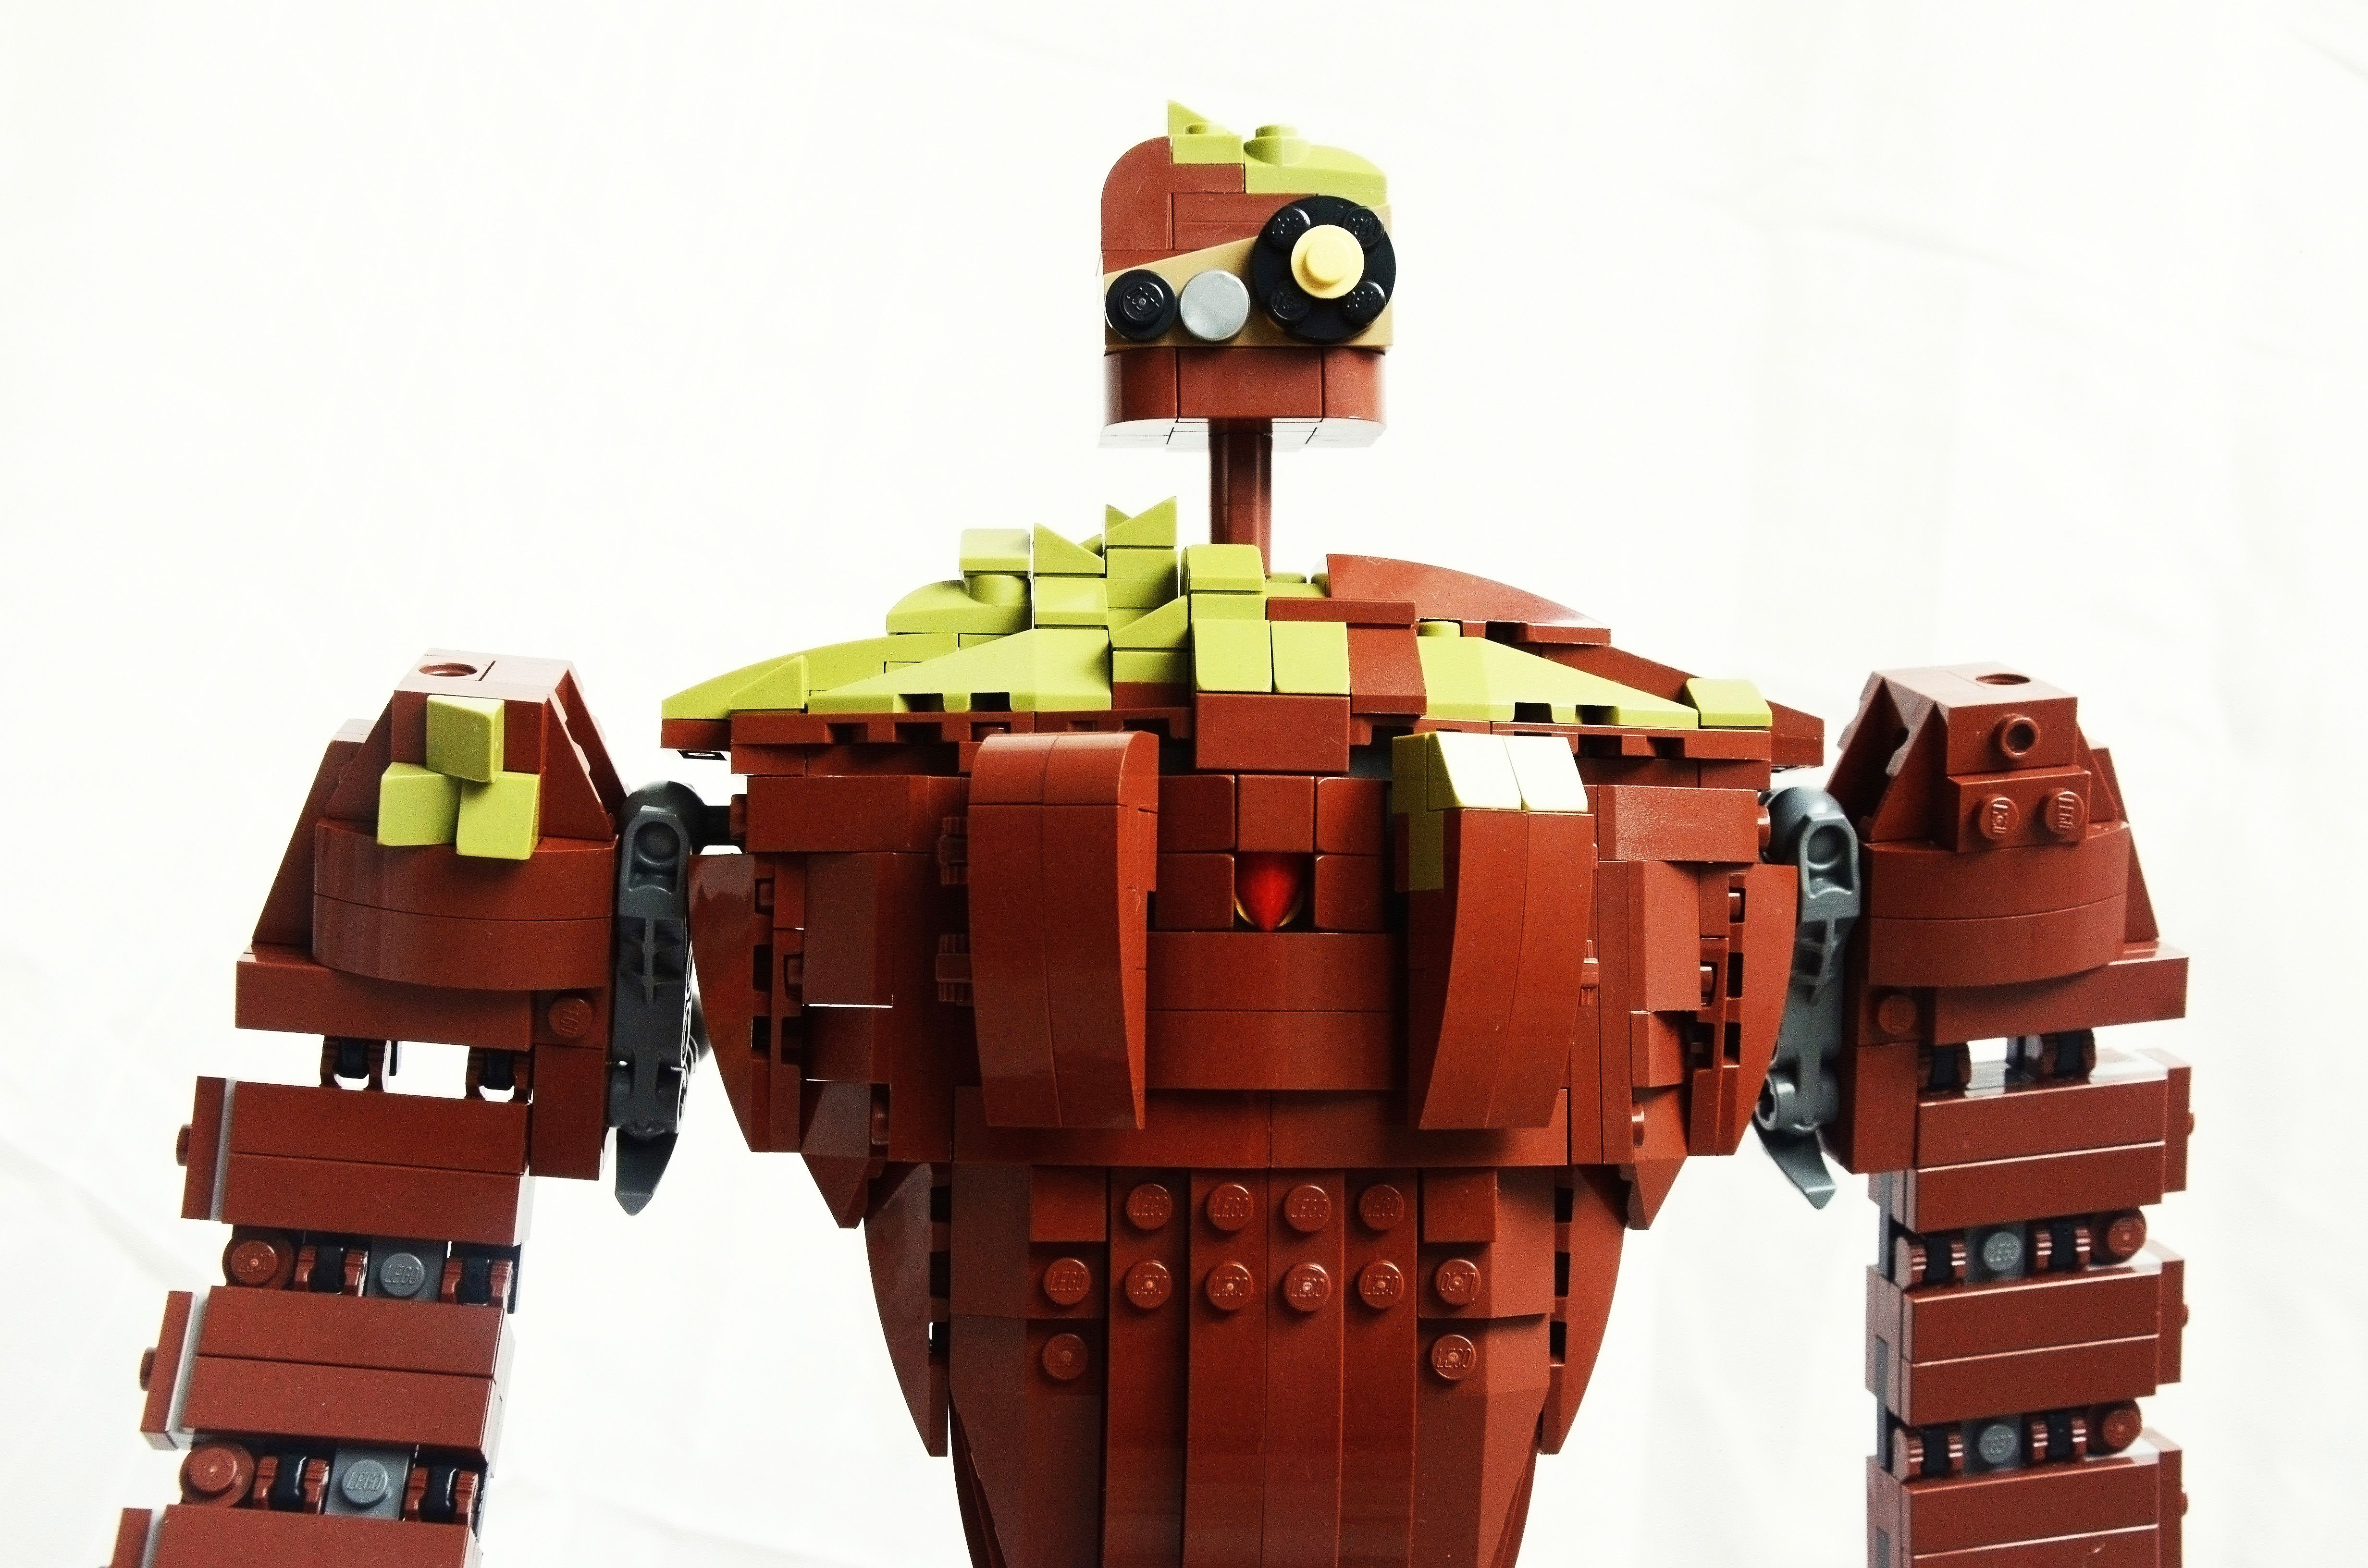 Laputa robot from lego bricks please support so it can